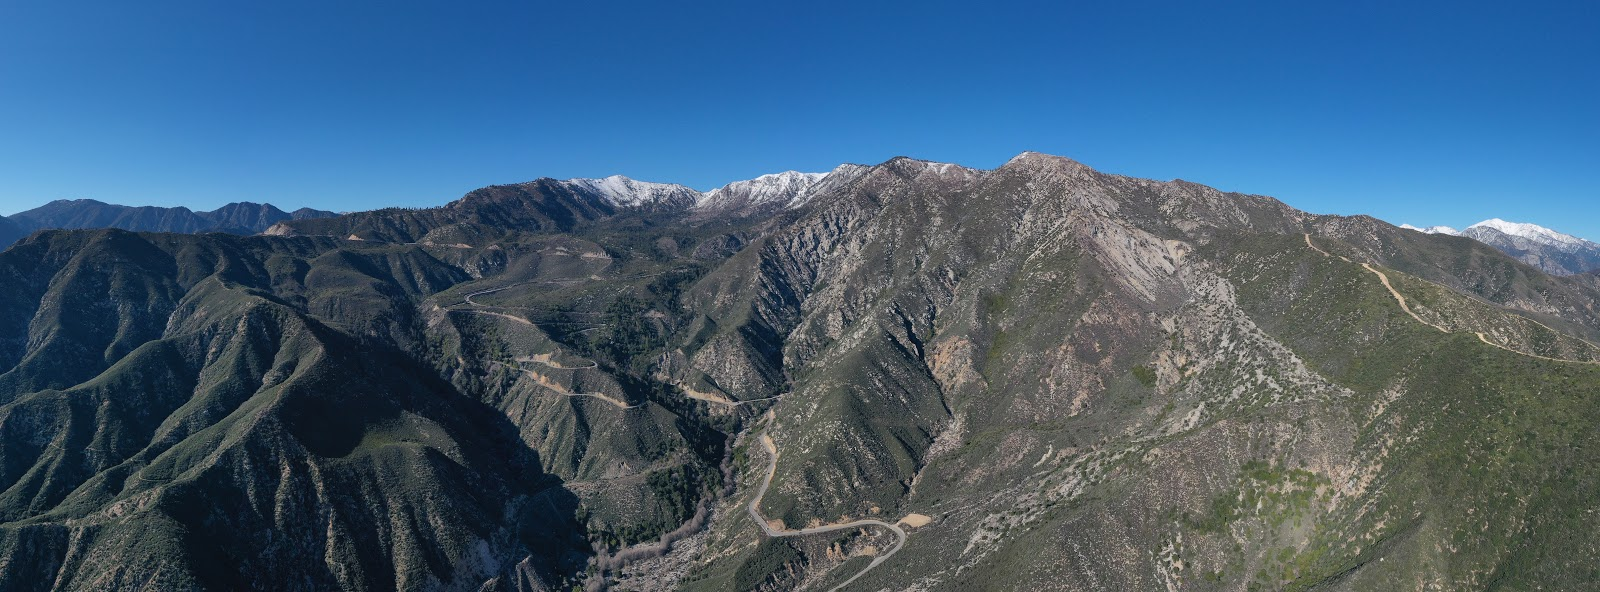 Cycling Dawson Saddle from San Gabriel Reservoir - view of Hairpin curves.